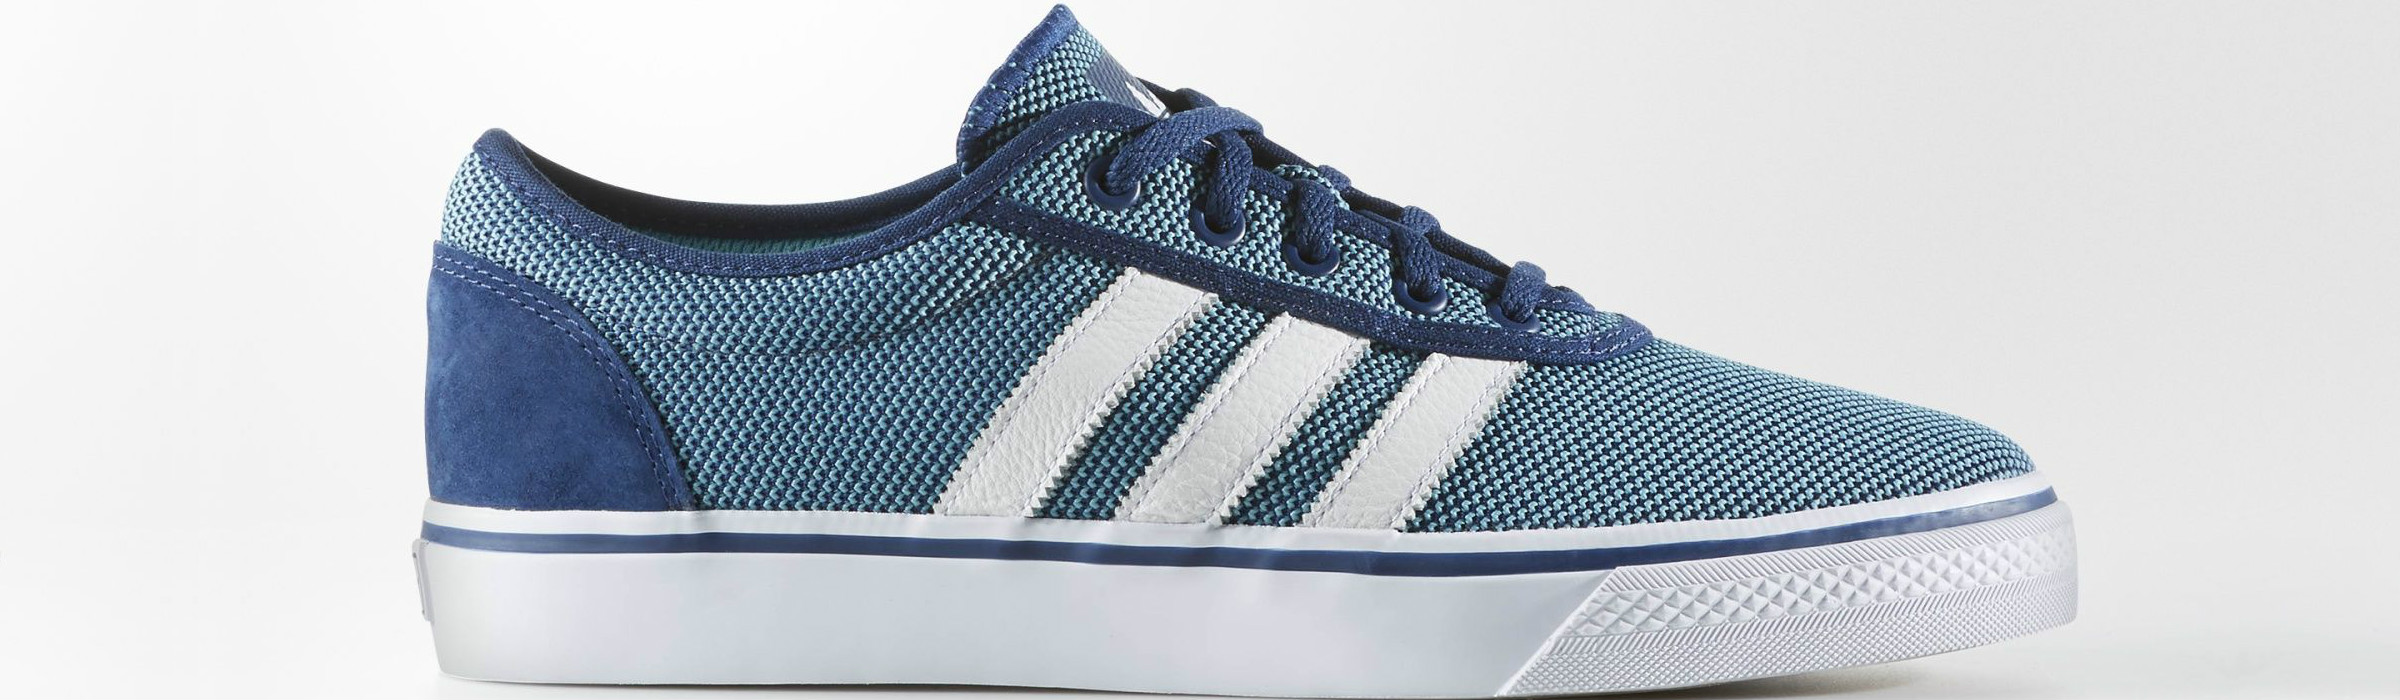 Adidas Adiease Shoes Mystery Blue Footwear White Easy Mint Full